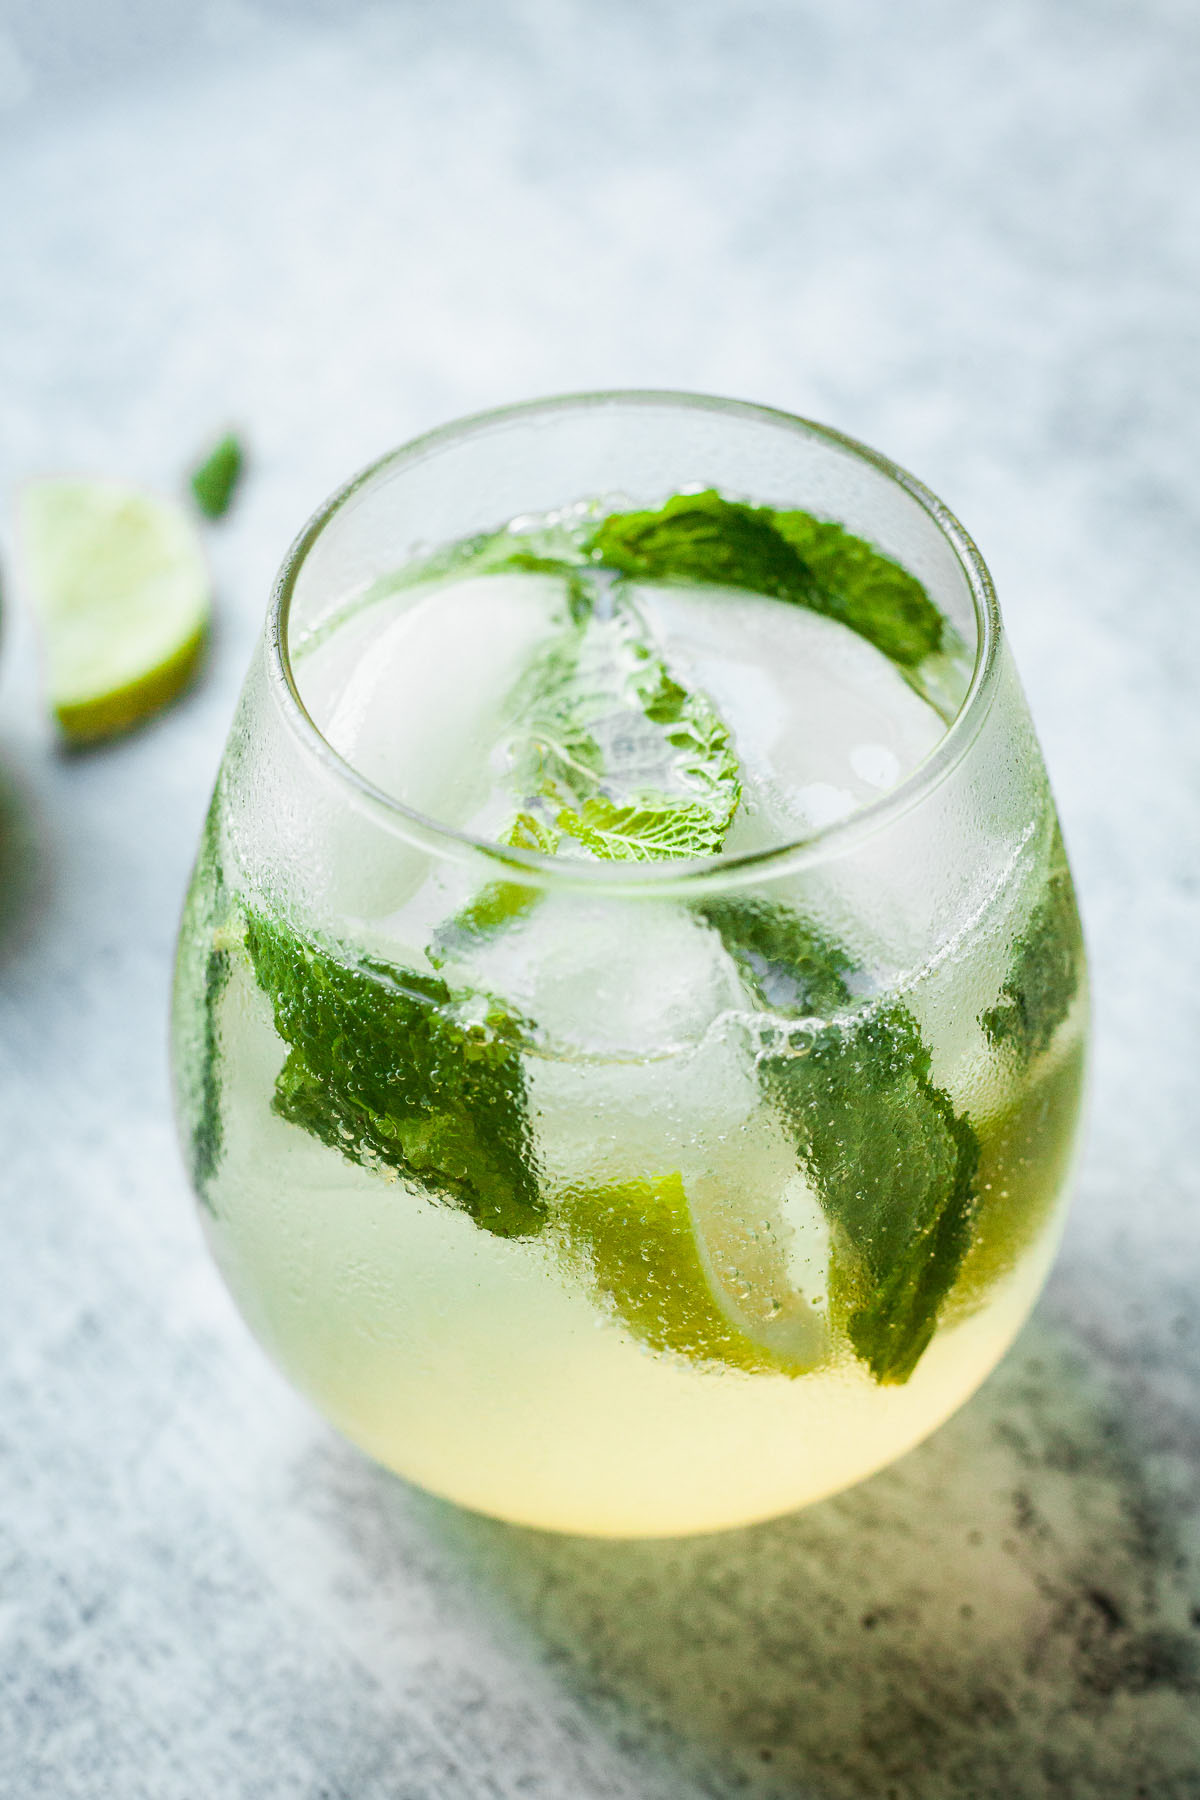 close image of top of glass with ice, mint and lime wedges